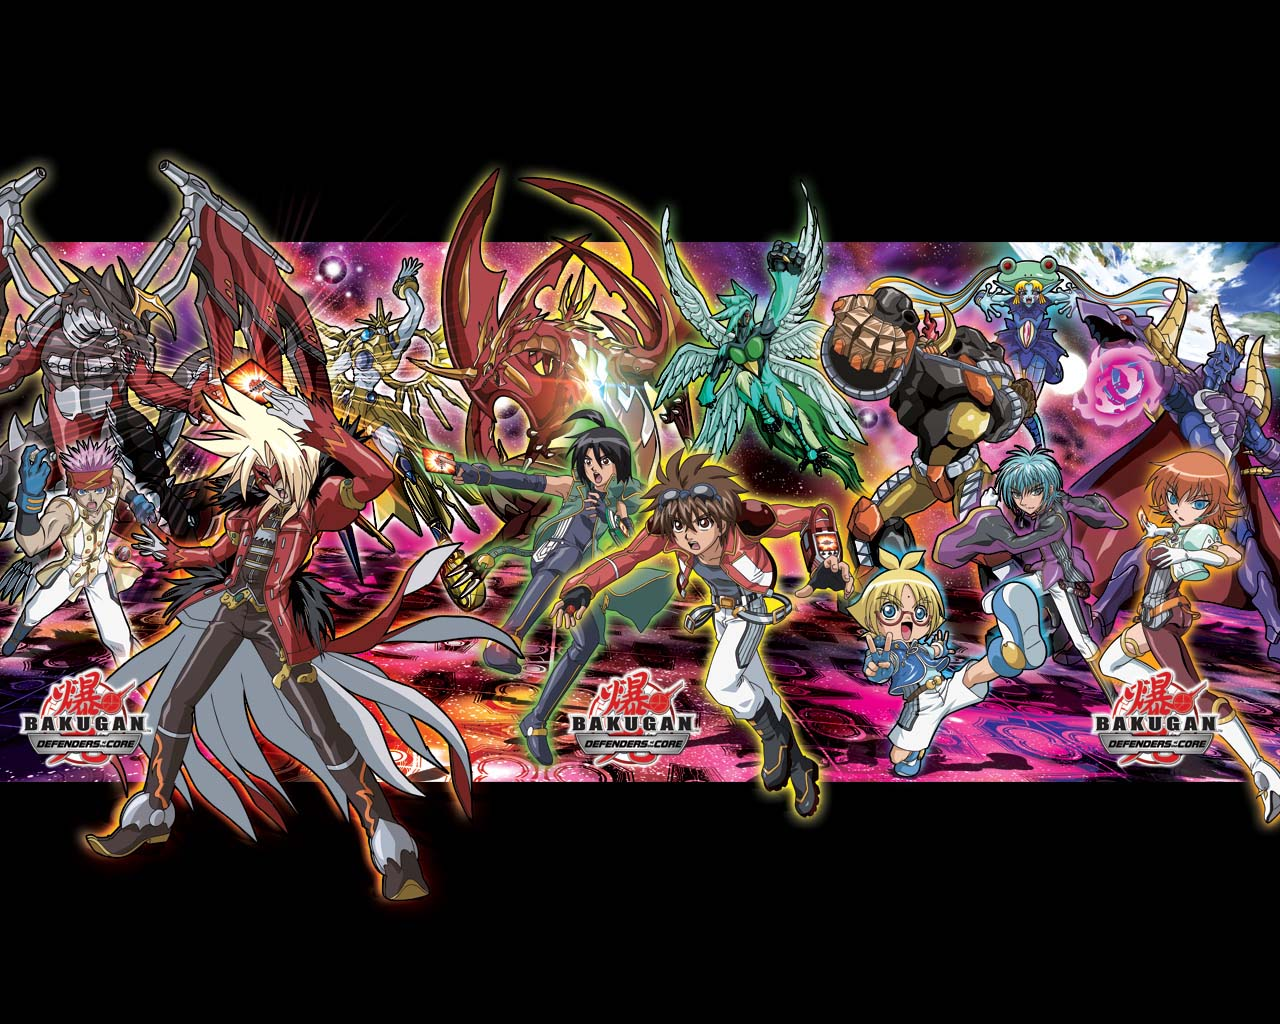 BAKUGAN DEFENDERS OF THE CORE VIDEOGAME WALLPAPERS